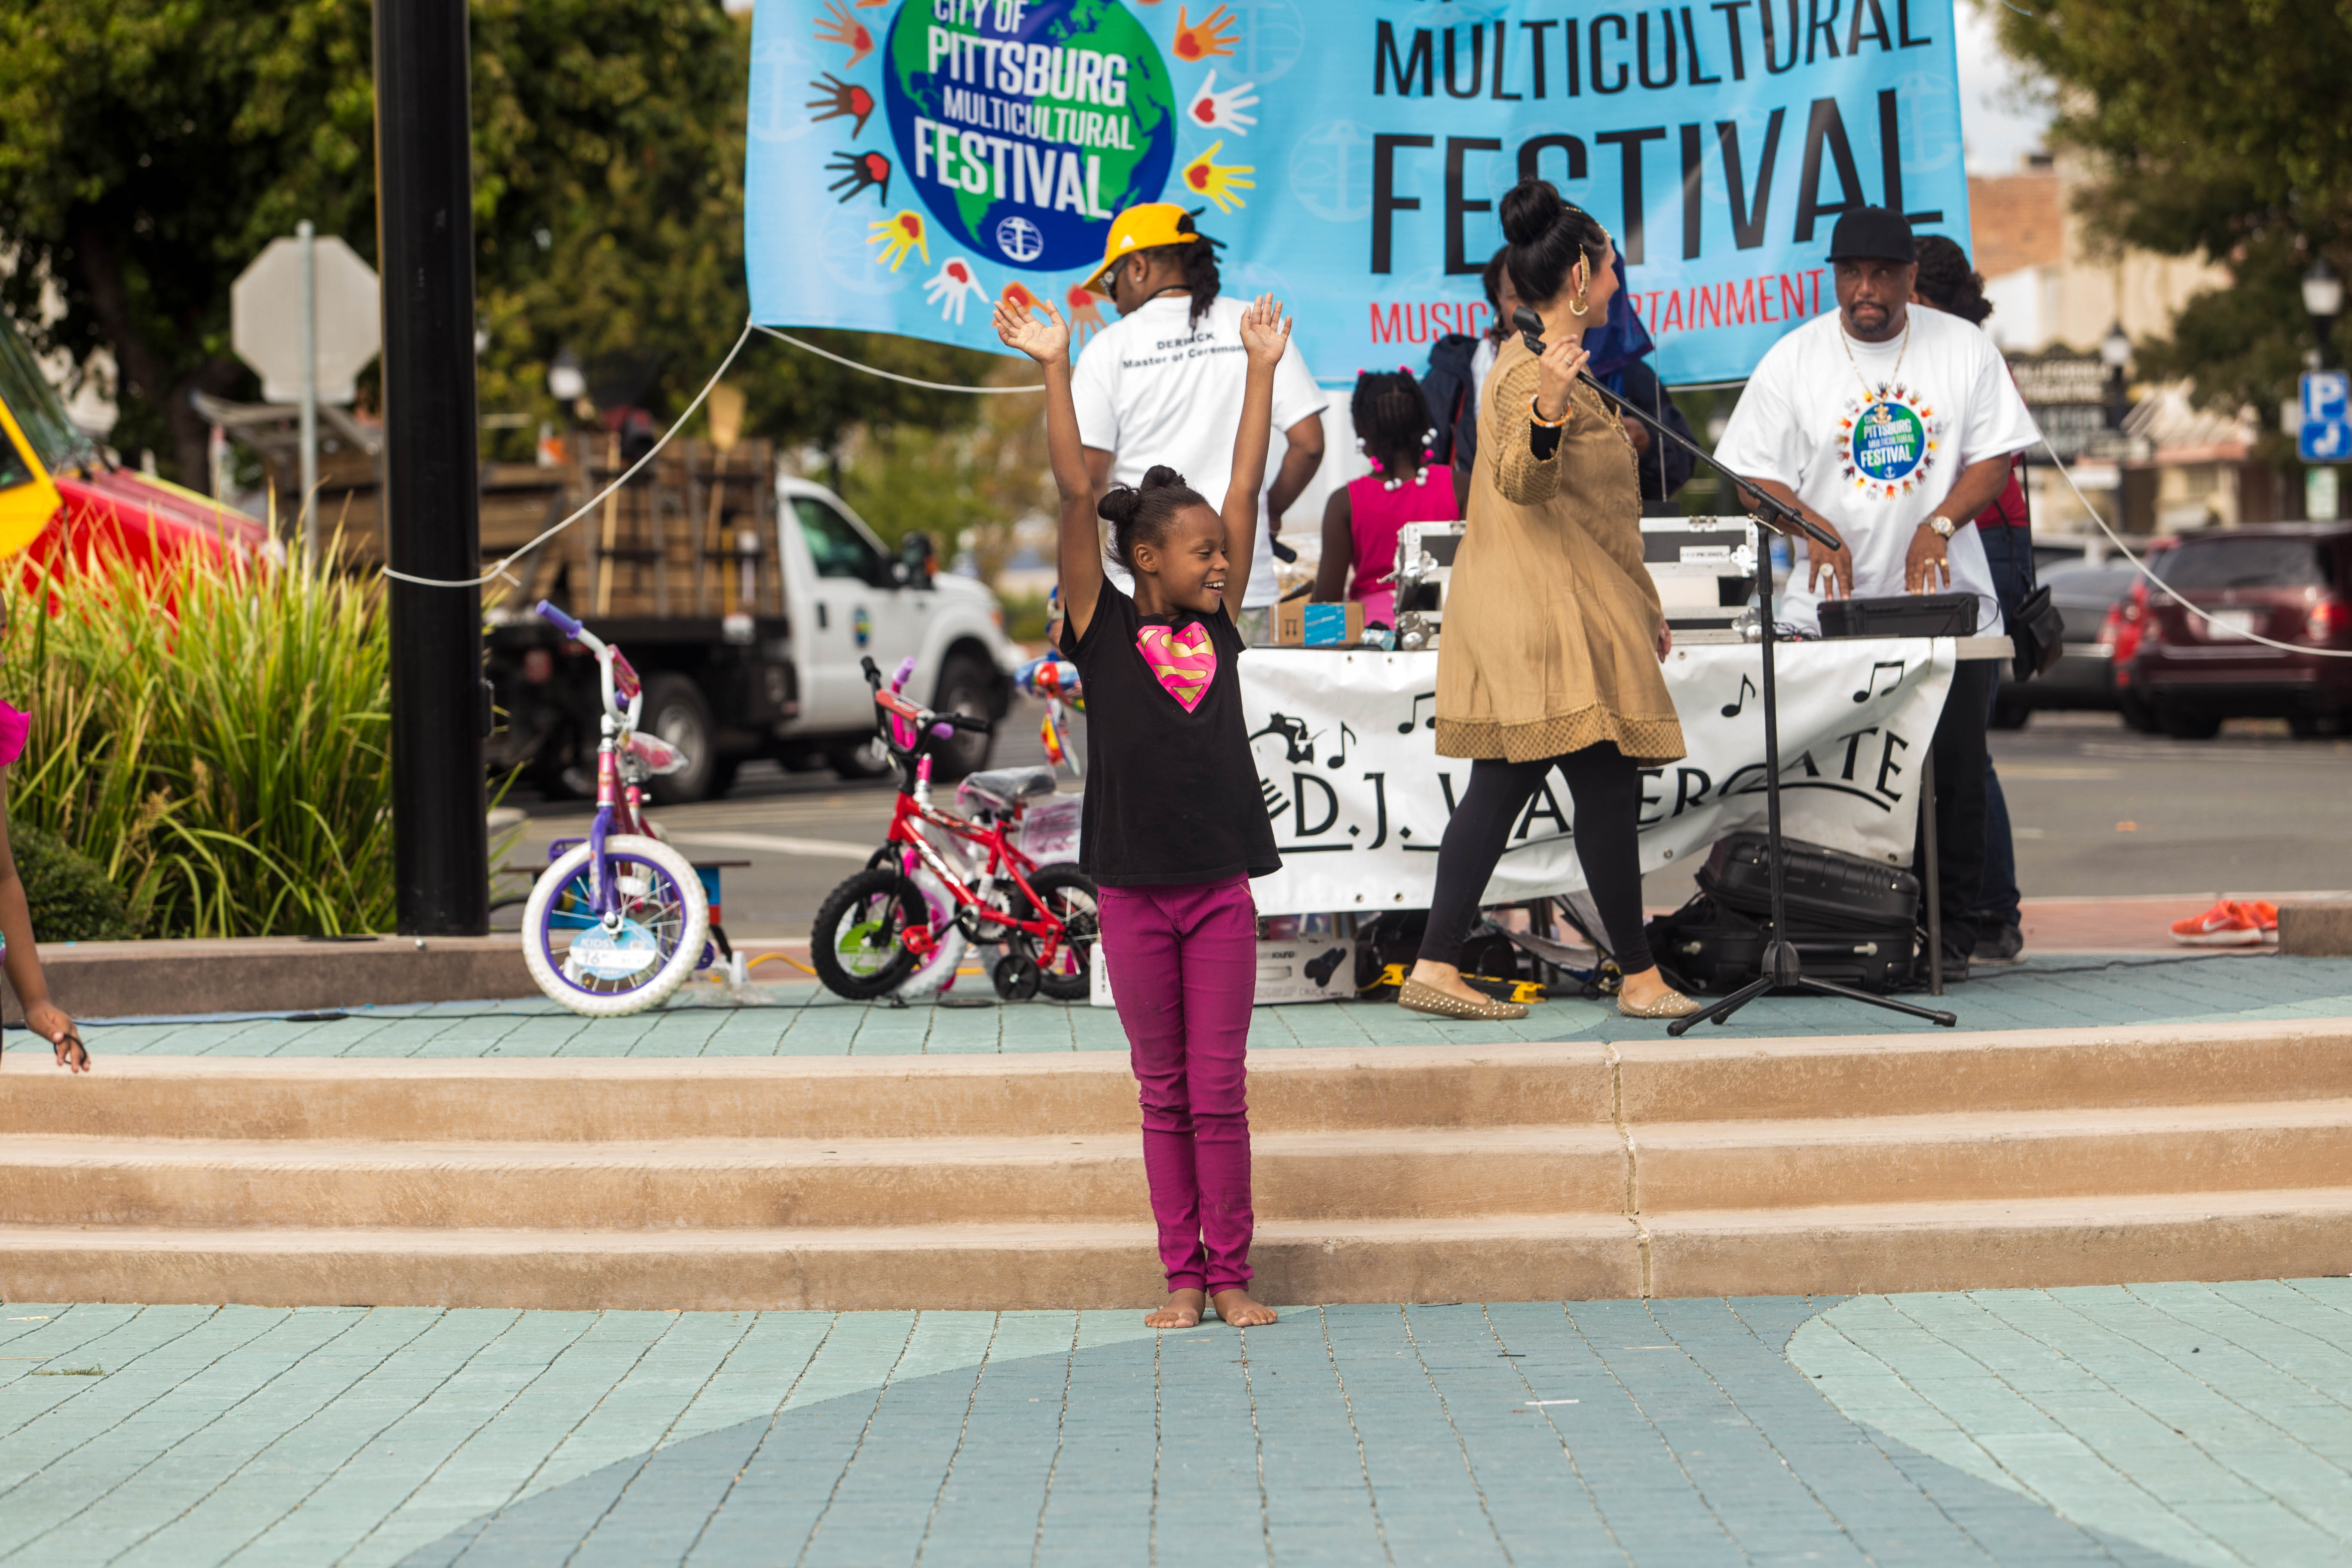 CITY_PITTSBURG_MULTICULTURAL_OCTOBER_2016 (652)